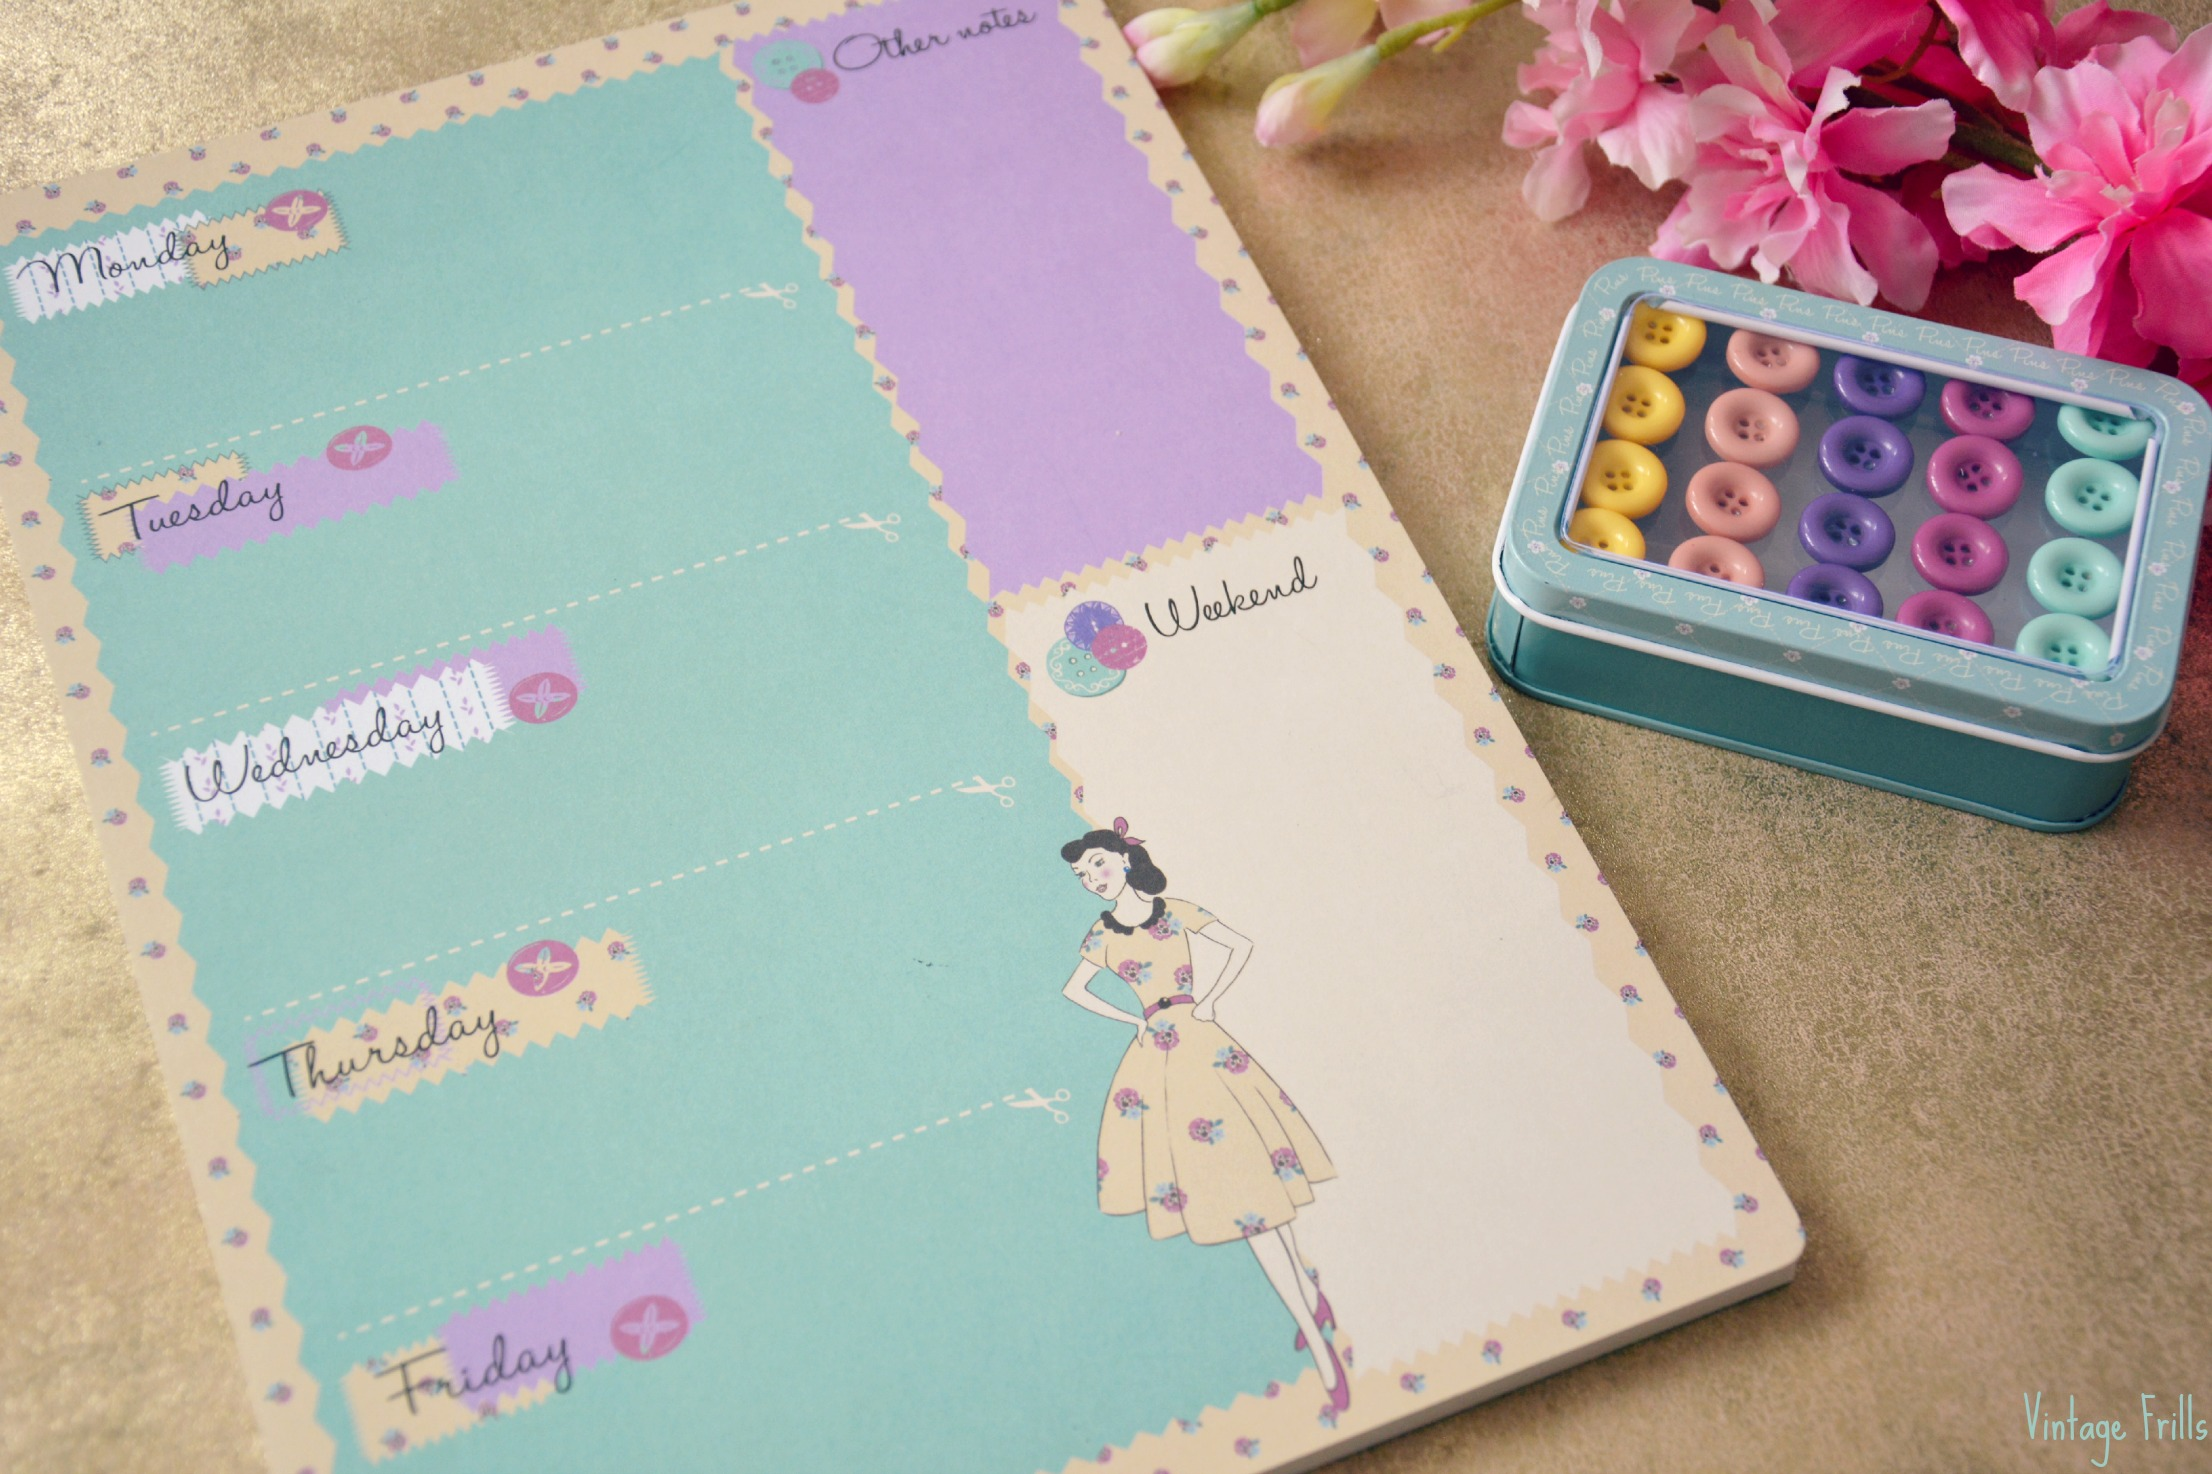 Wilkos Vintage Weekly Planner and Button Pins